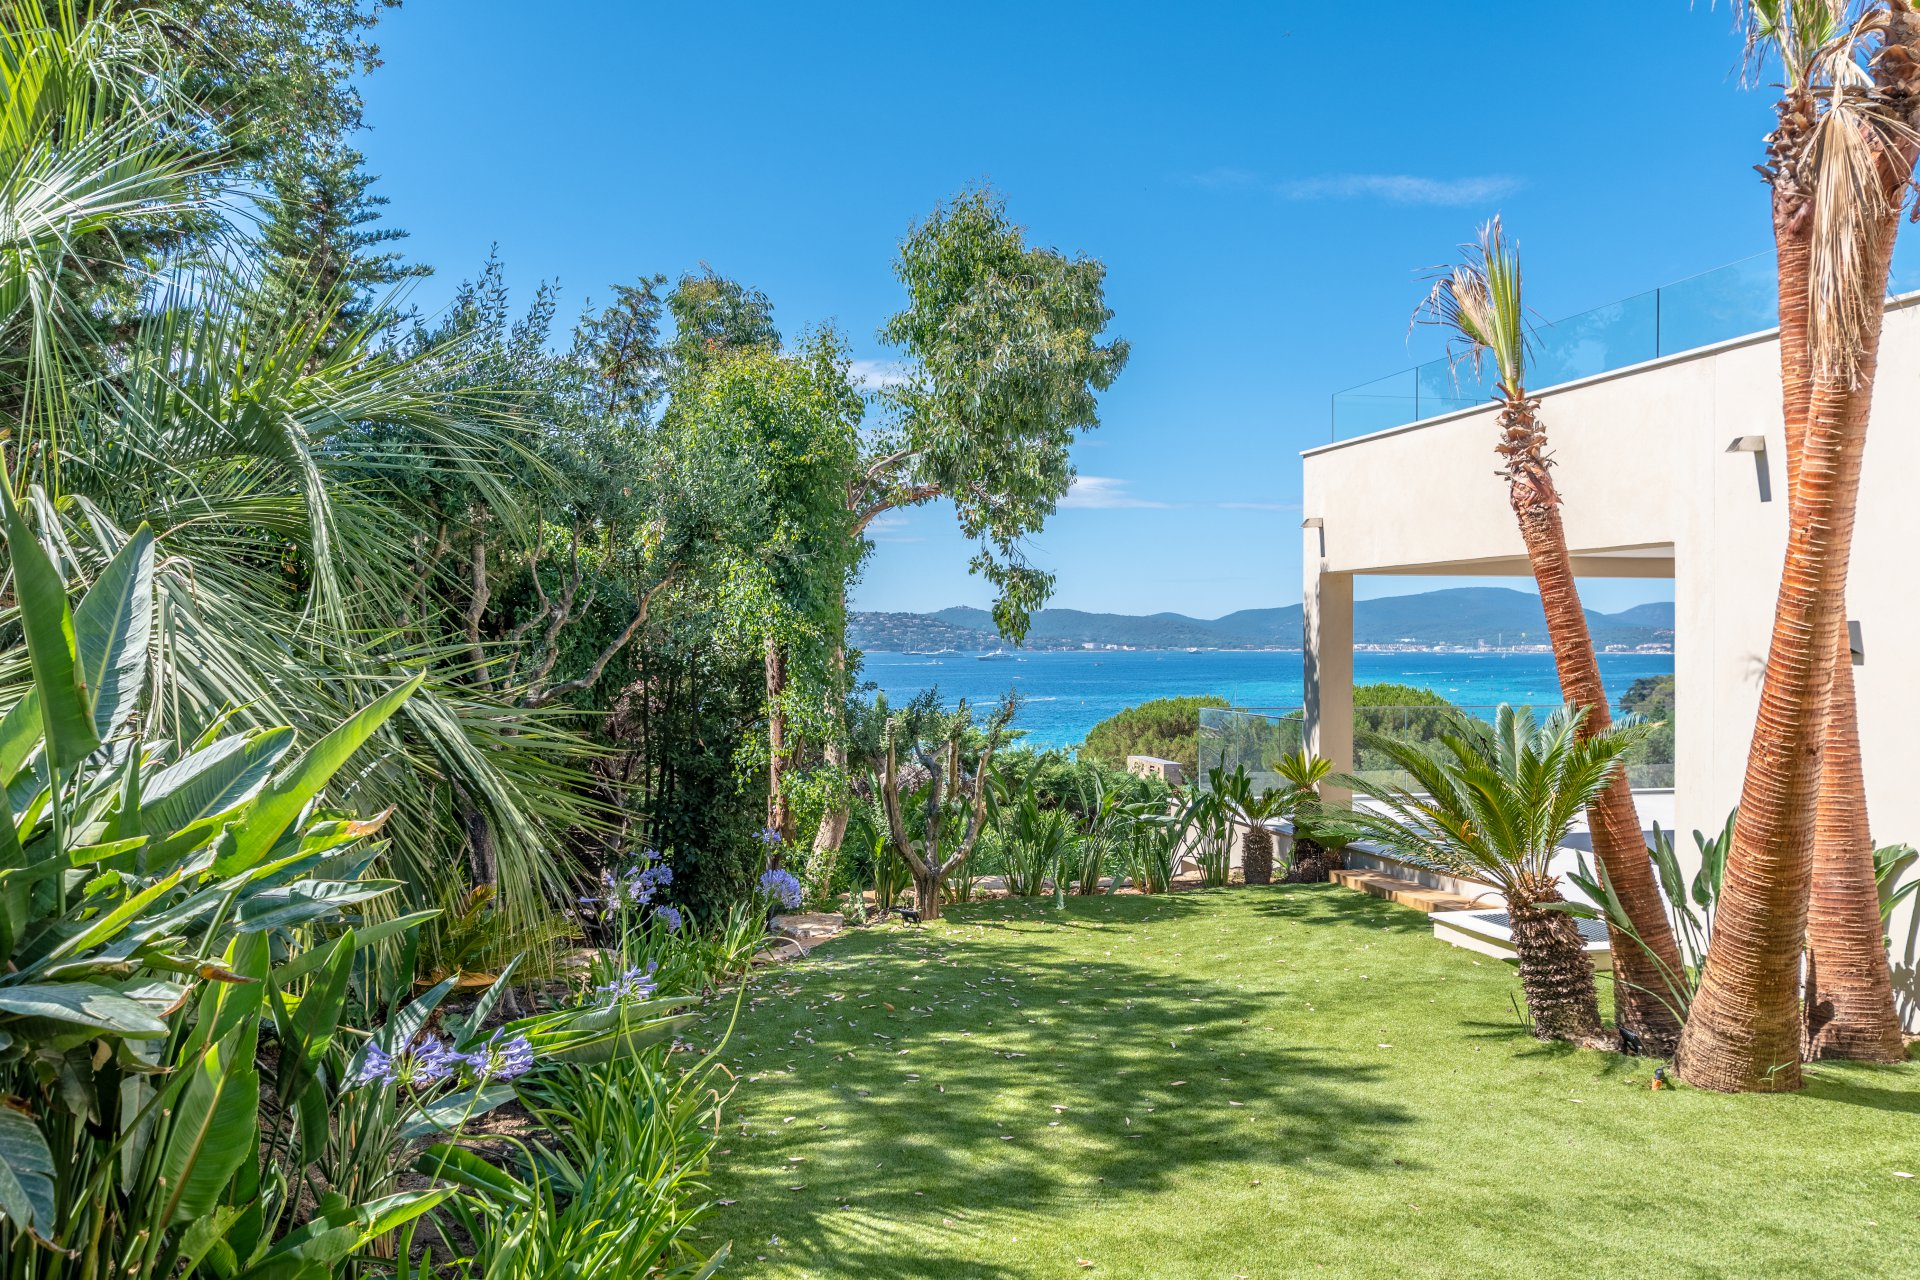 Villa renovated in 2019 with sea view and pool